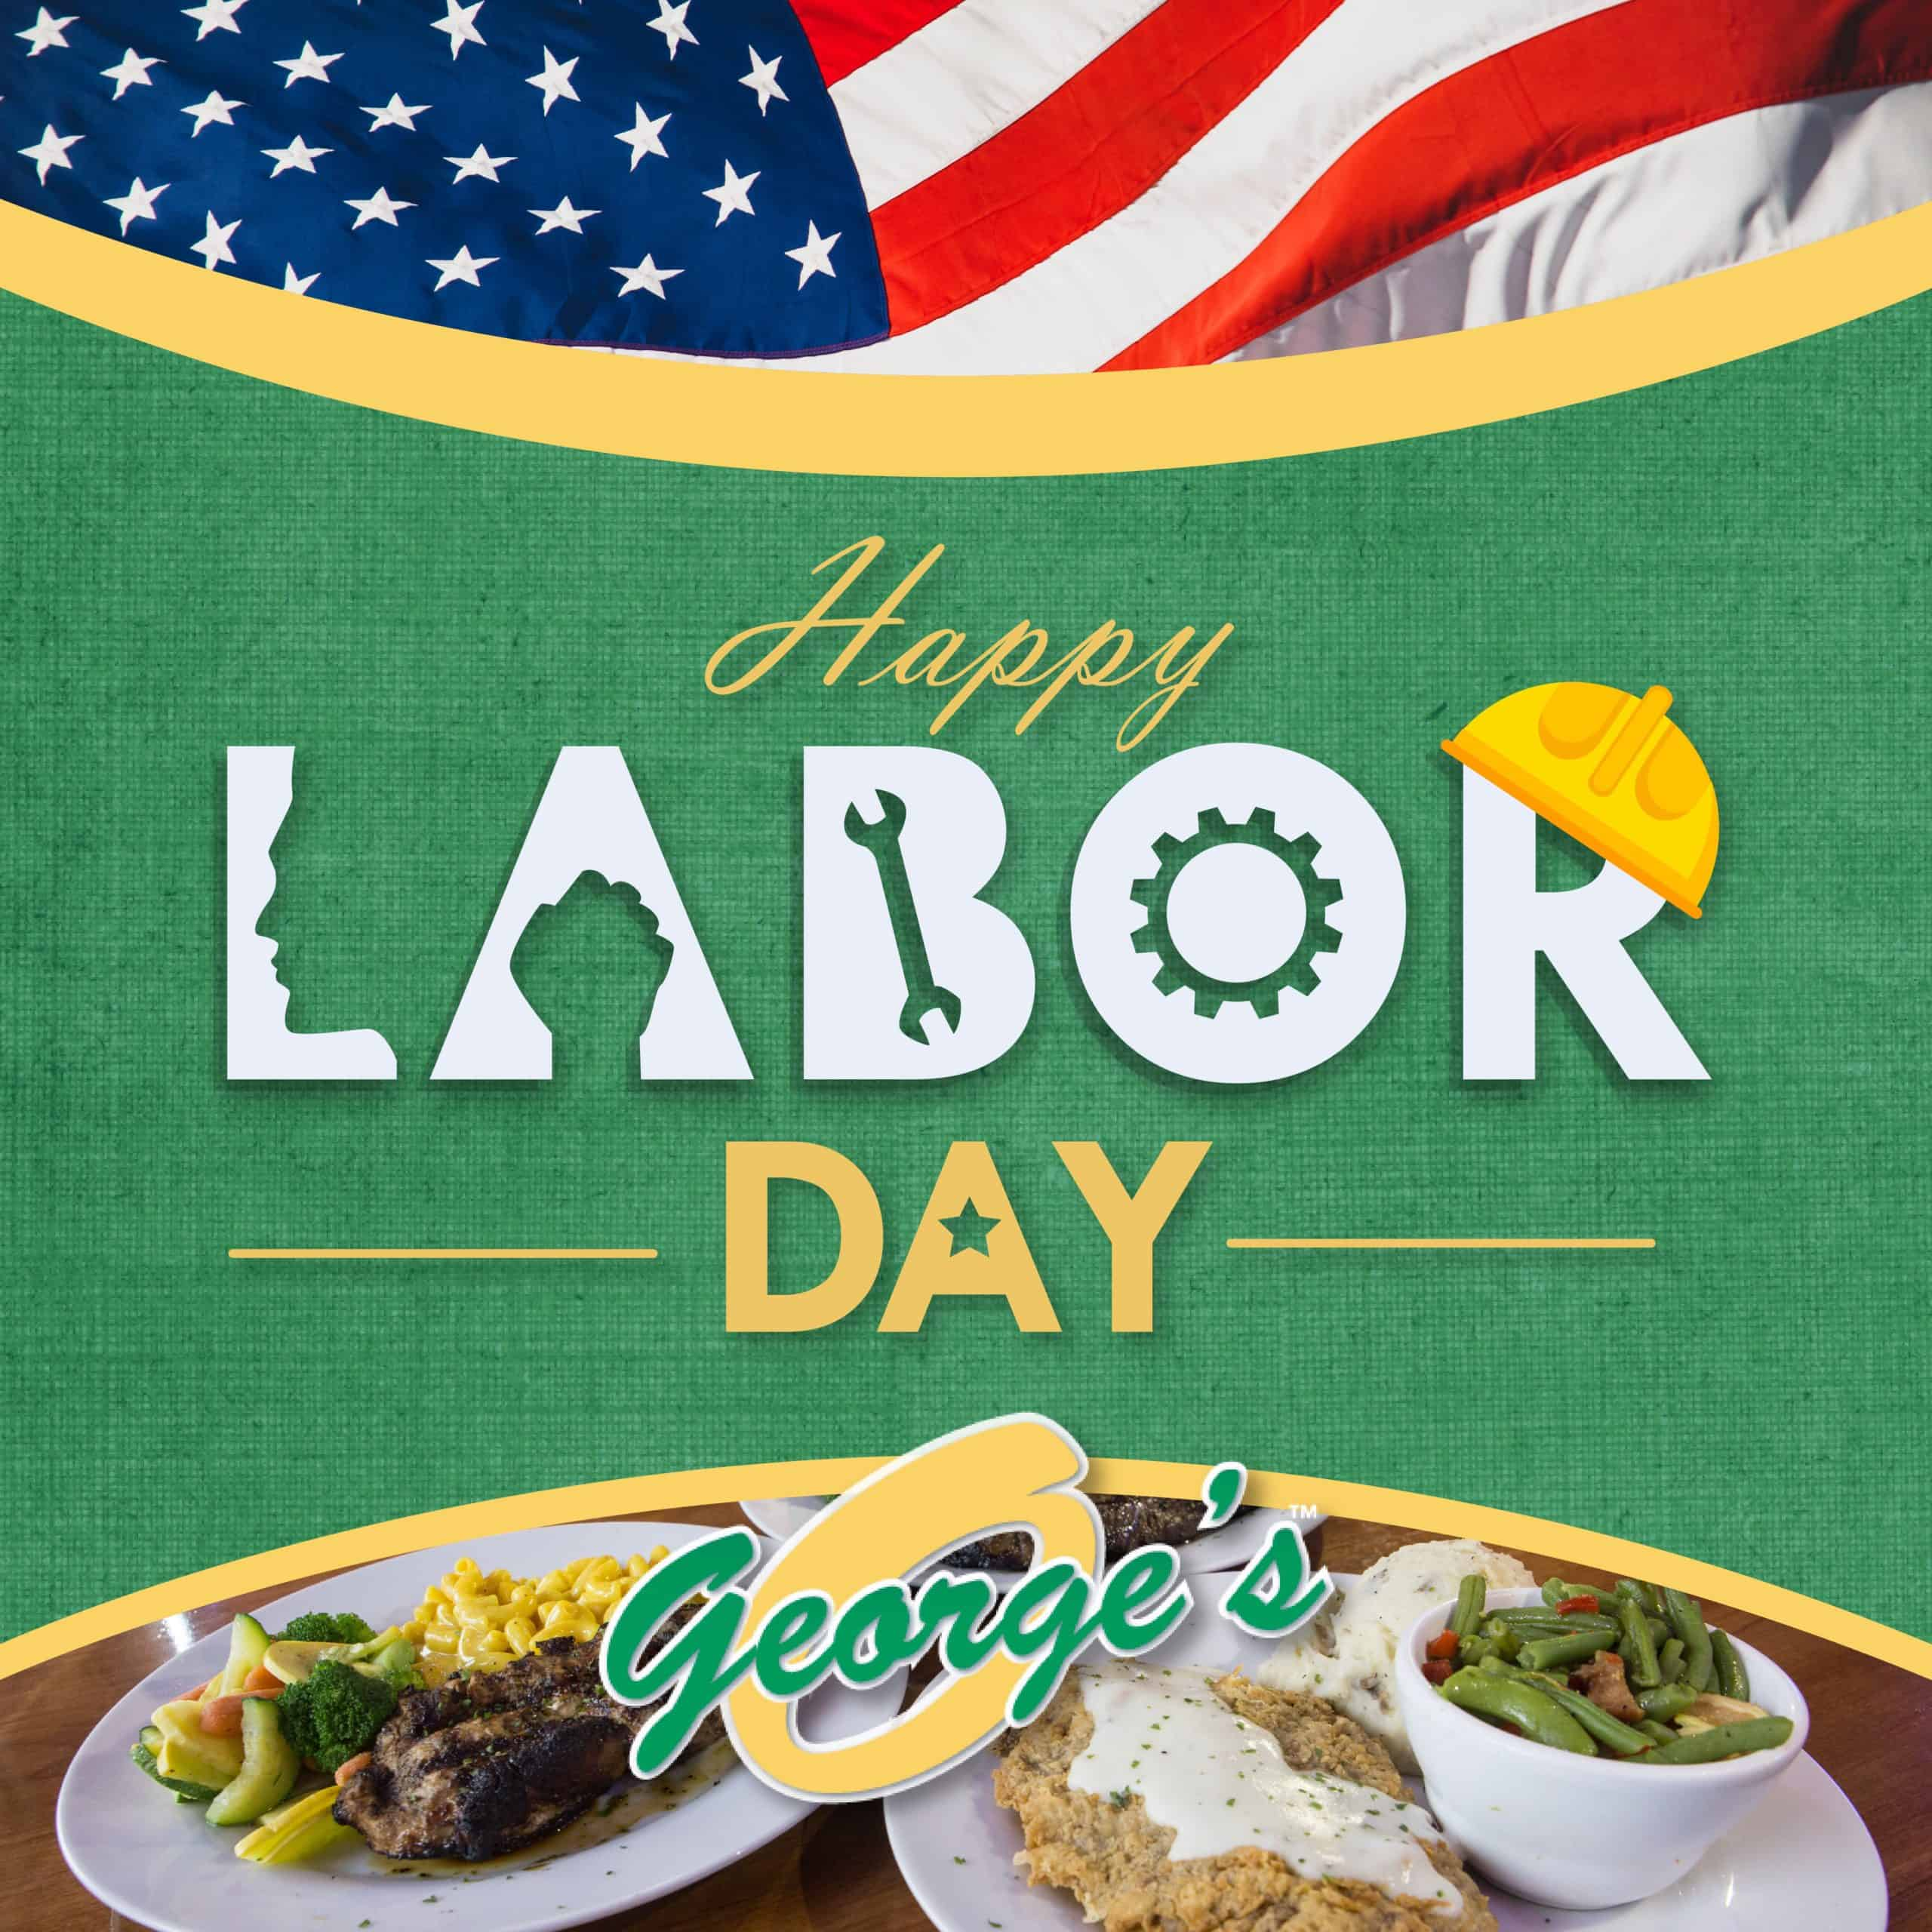 Georges-Waco-Labor-Day